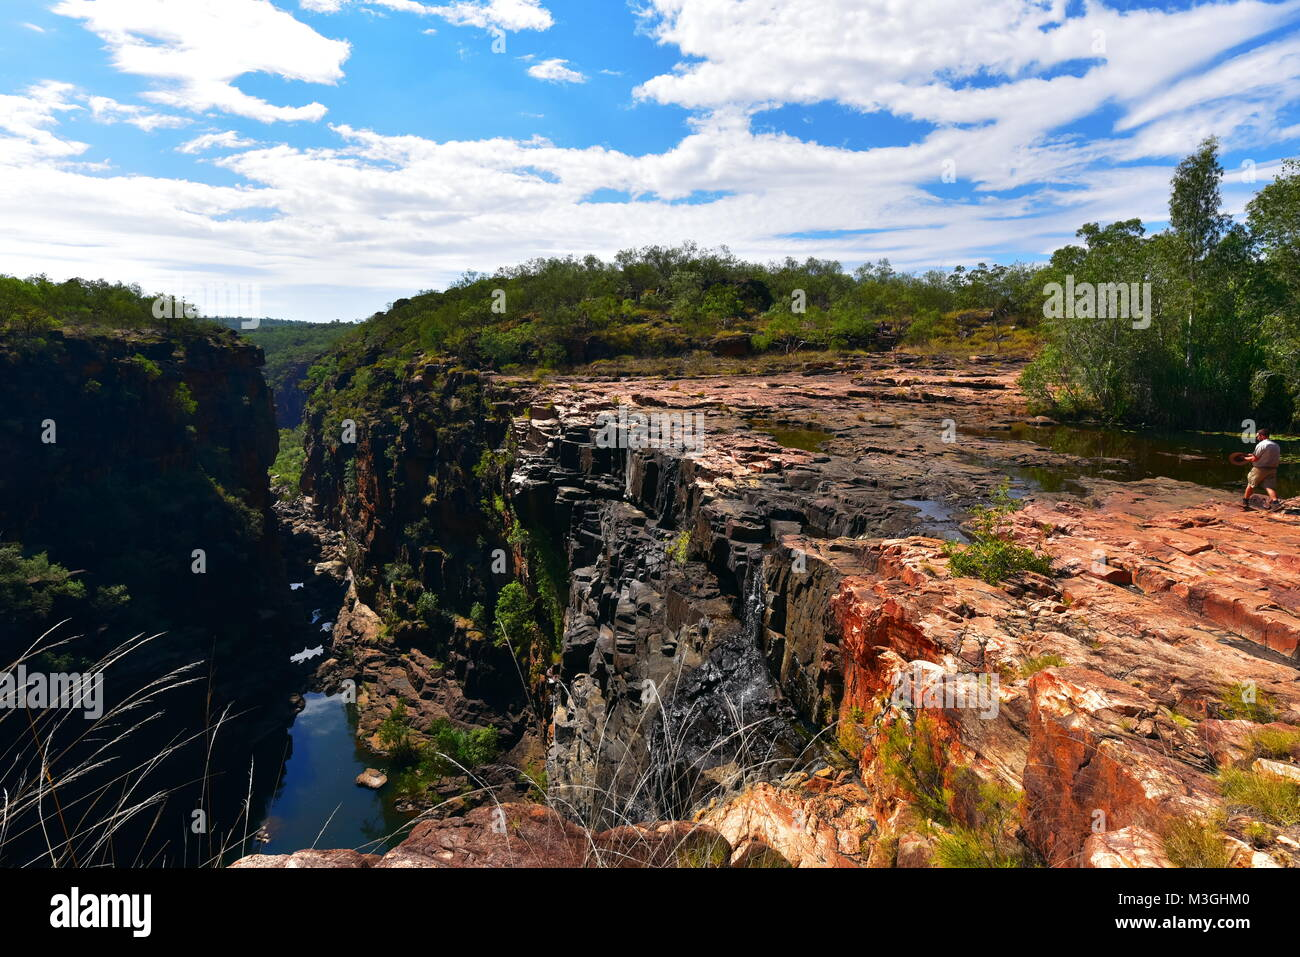 Magnificent  Big Mertins Gorge ,and nearby top of the Mitchell Falls Gorges in Western Australia - Stock Image